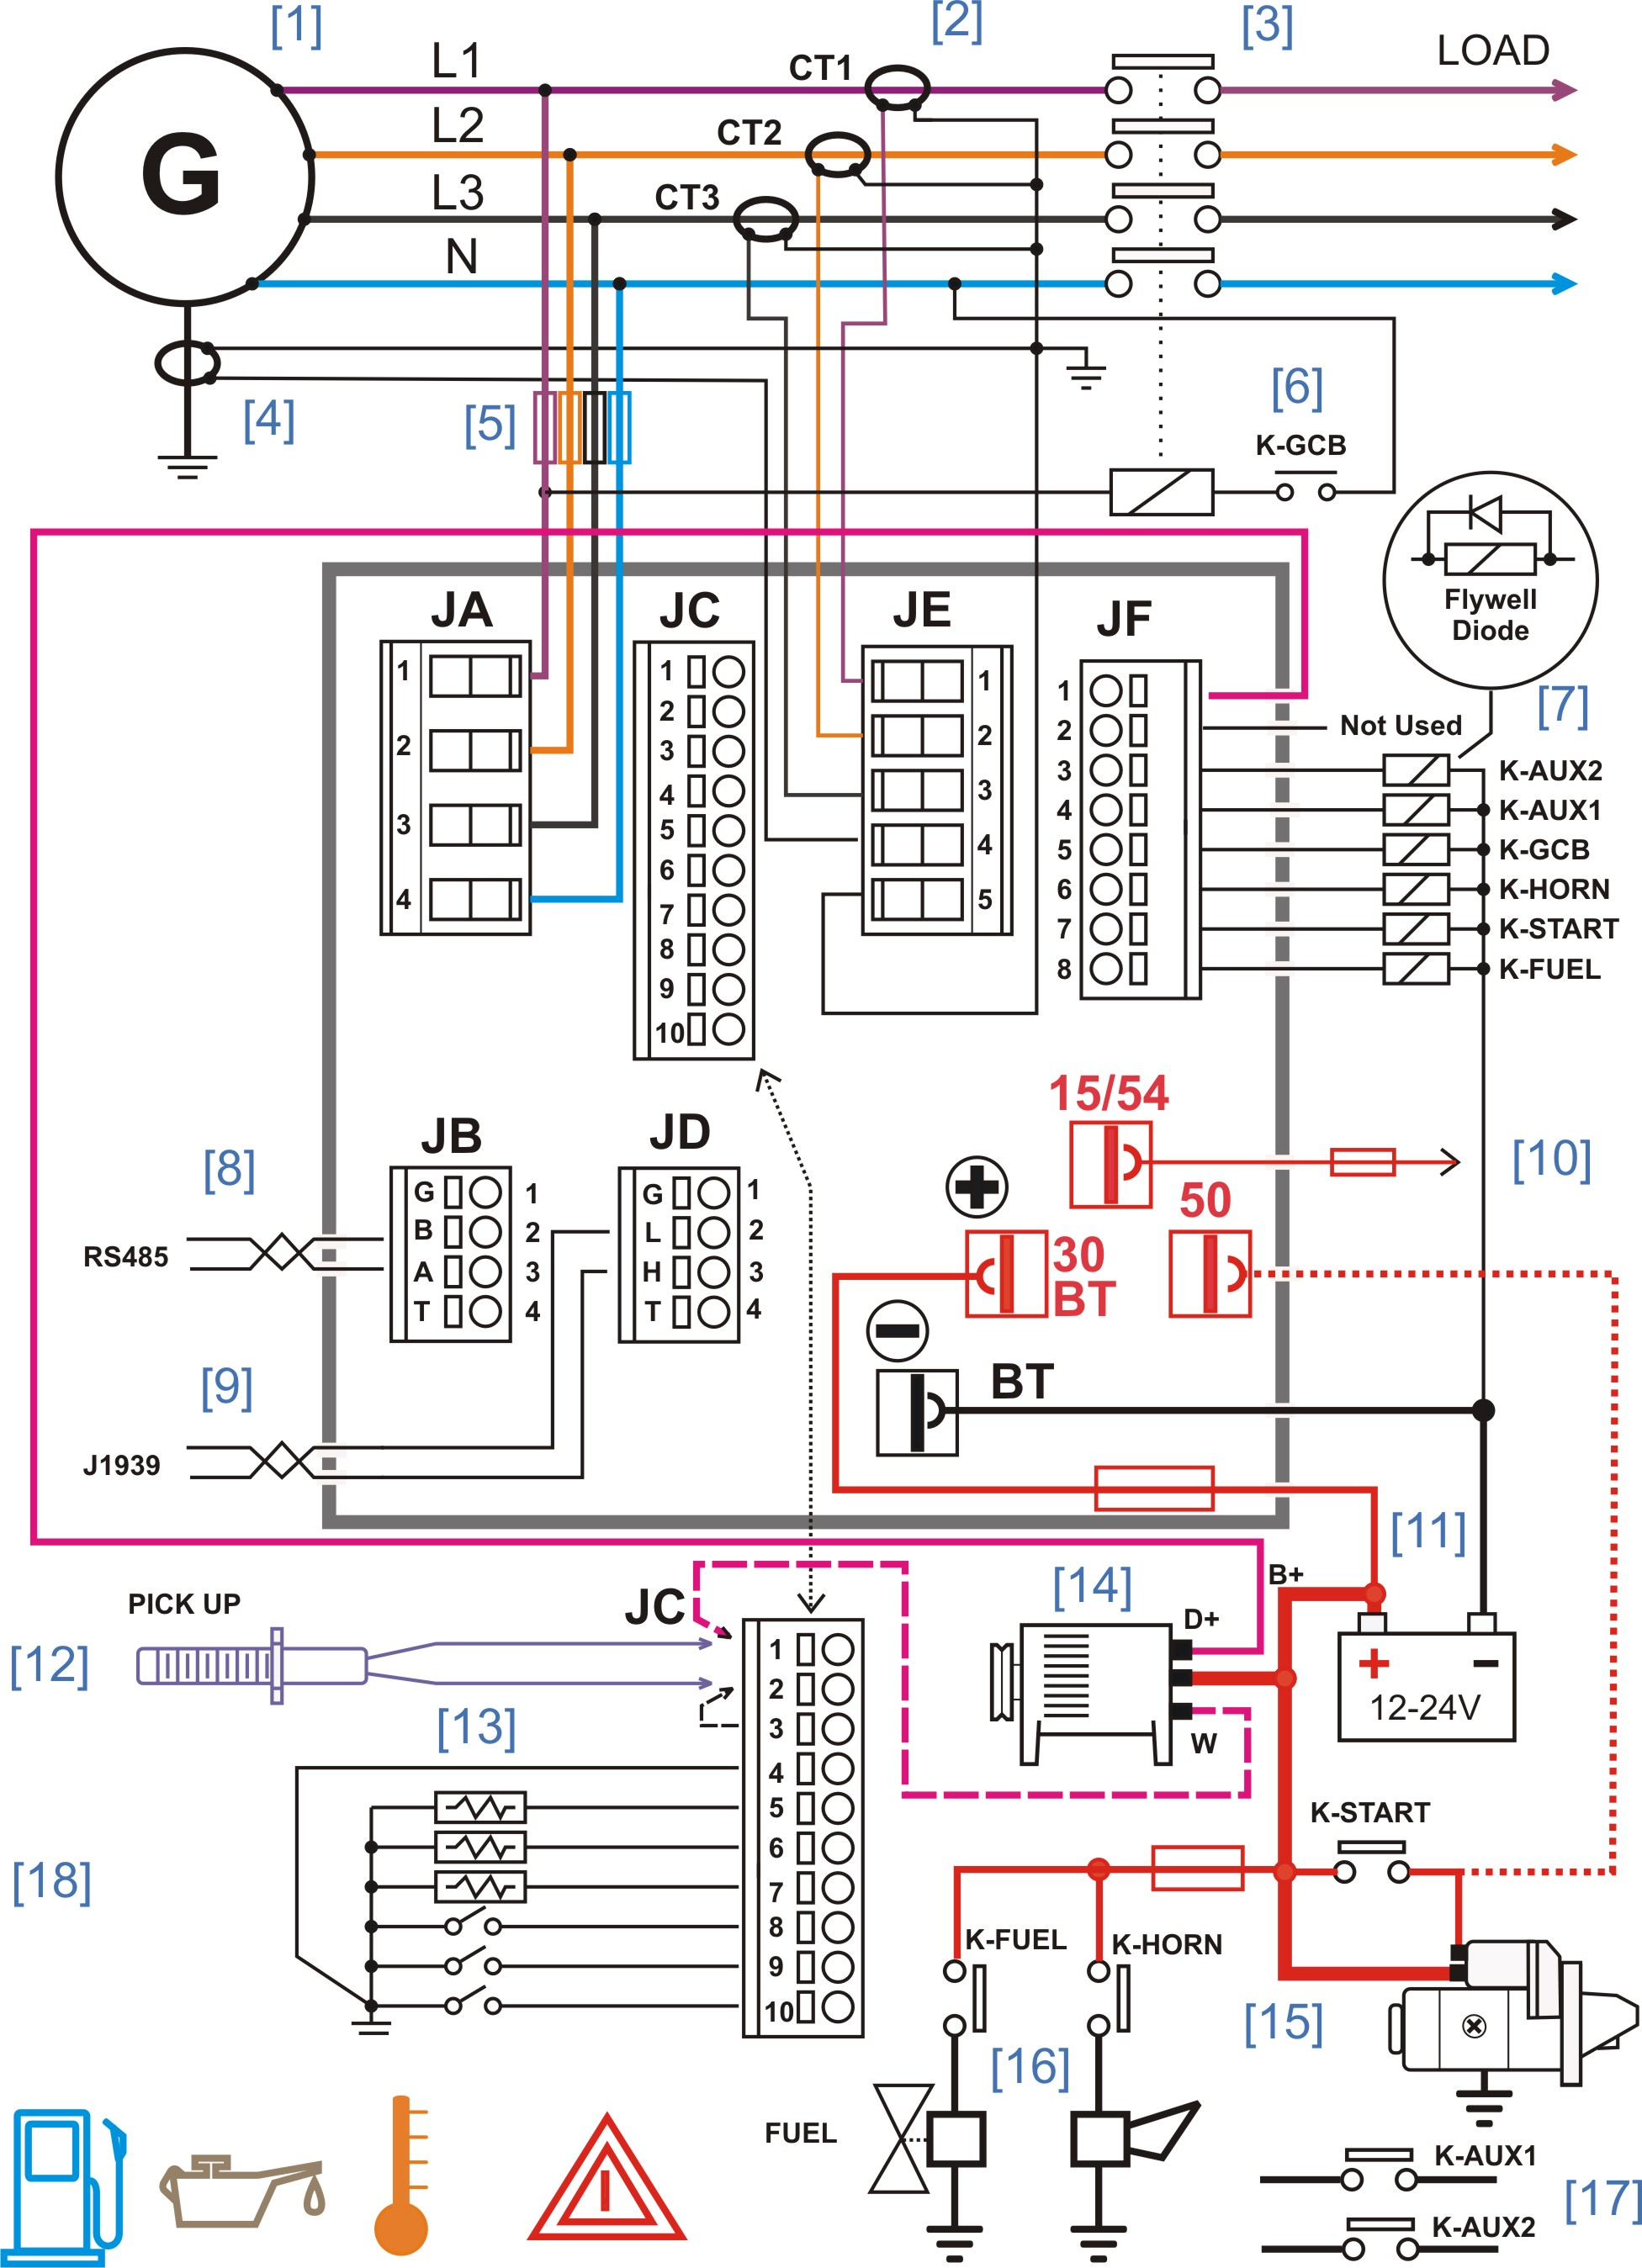 Diesel Generator Control Panel Wiring Diagram panel board wiring diagram house wiring diagram for ice \u2022 wiring kib monitor panel wiring diagram at nearapp.co